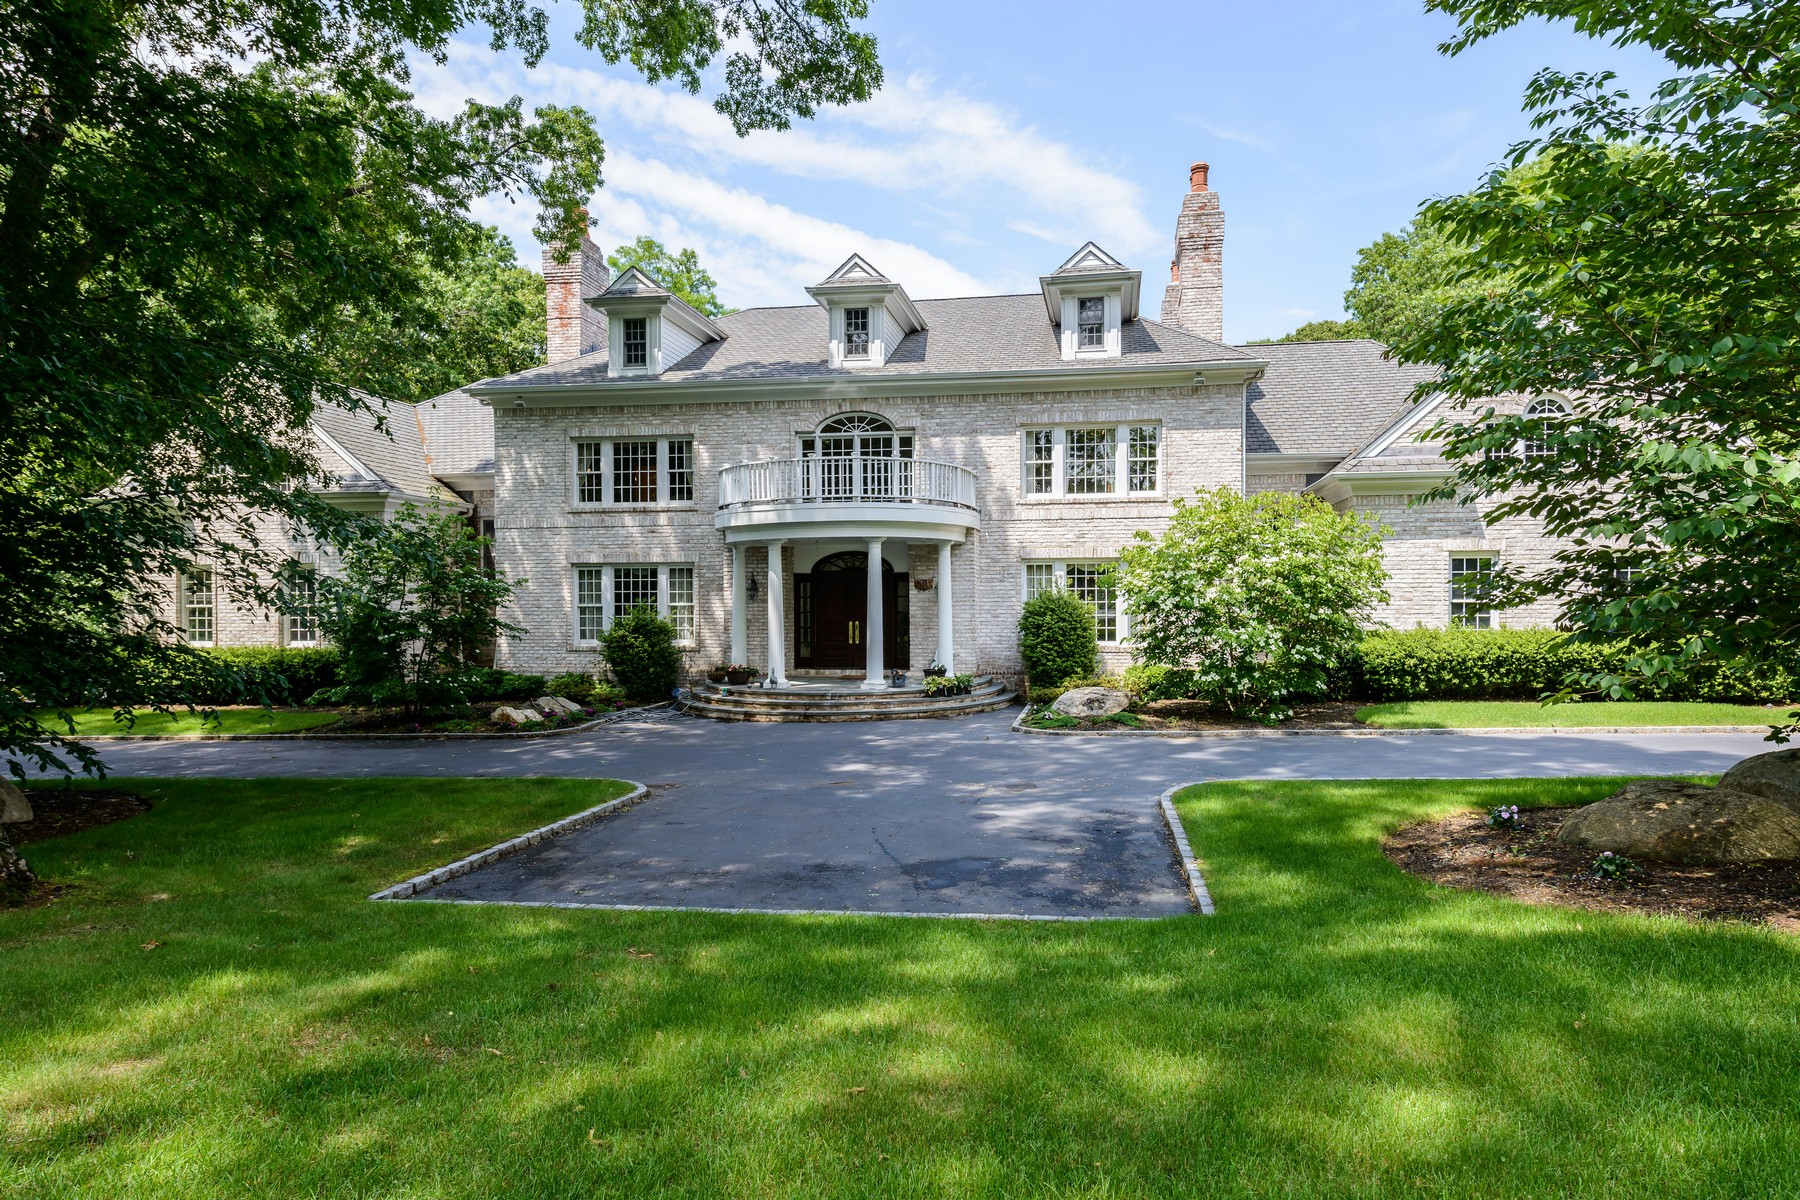 Single Family Home for Sale at Colonial 23 N Danton Ln Lattingtown, New York, 11560 United States